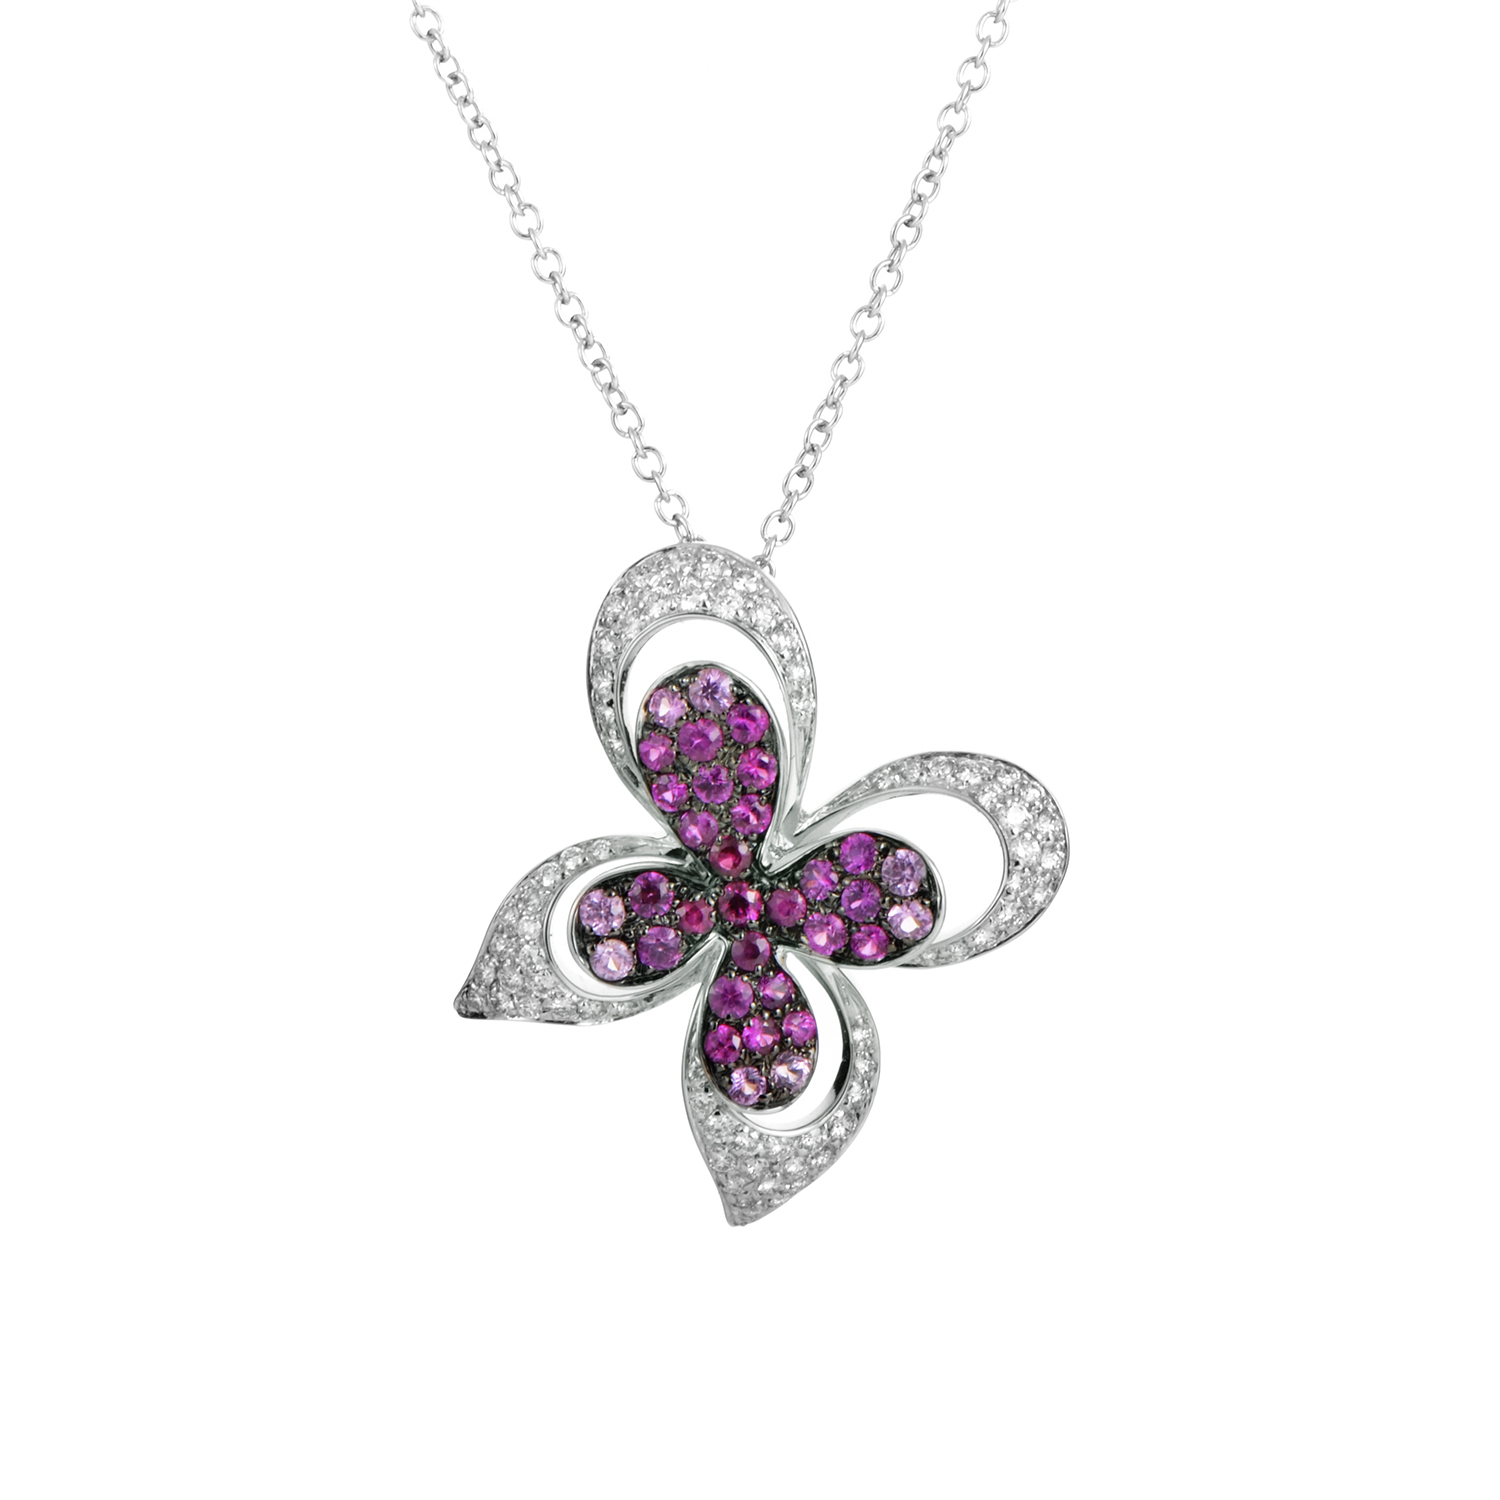 18K White Gold Diamond & Pink Sapphire Papillon Pendant Necklace